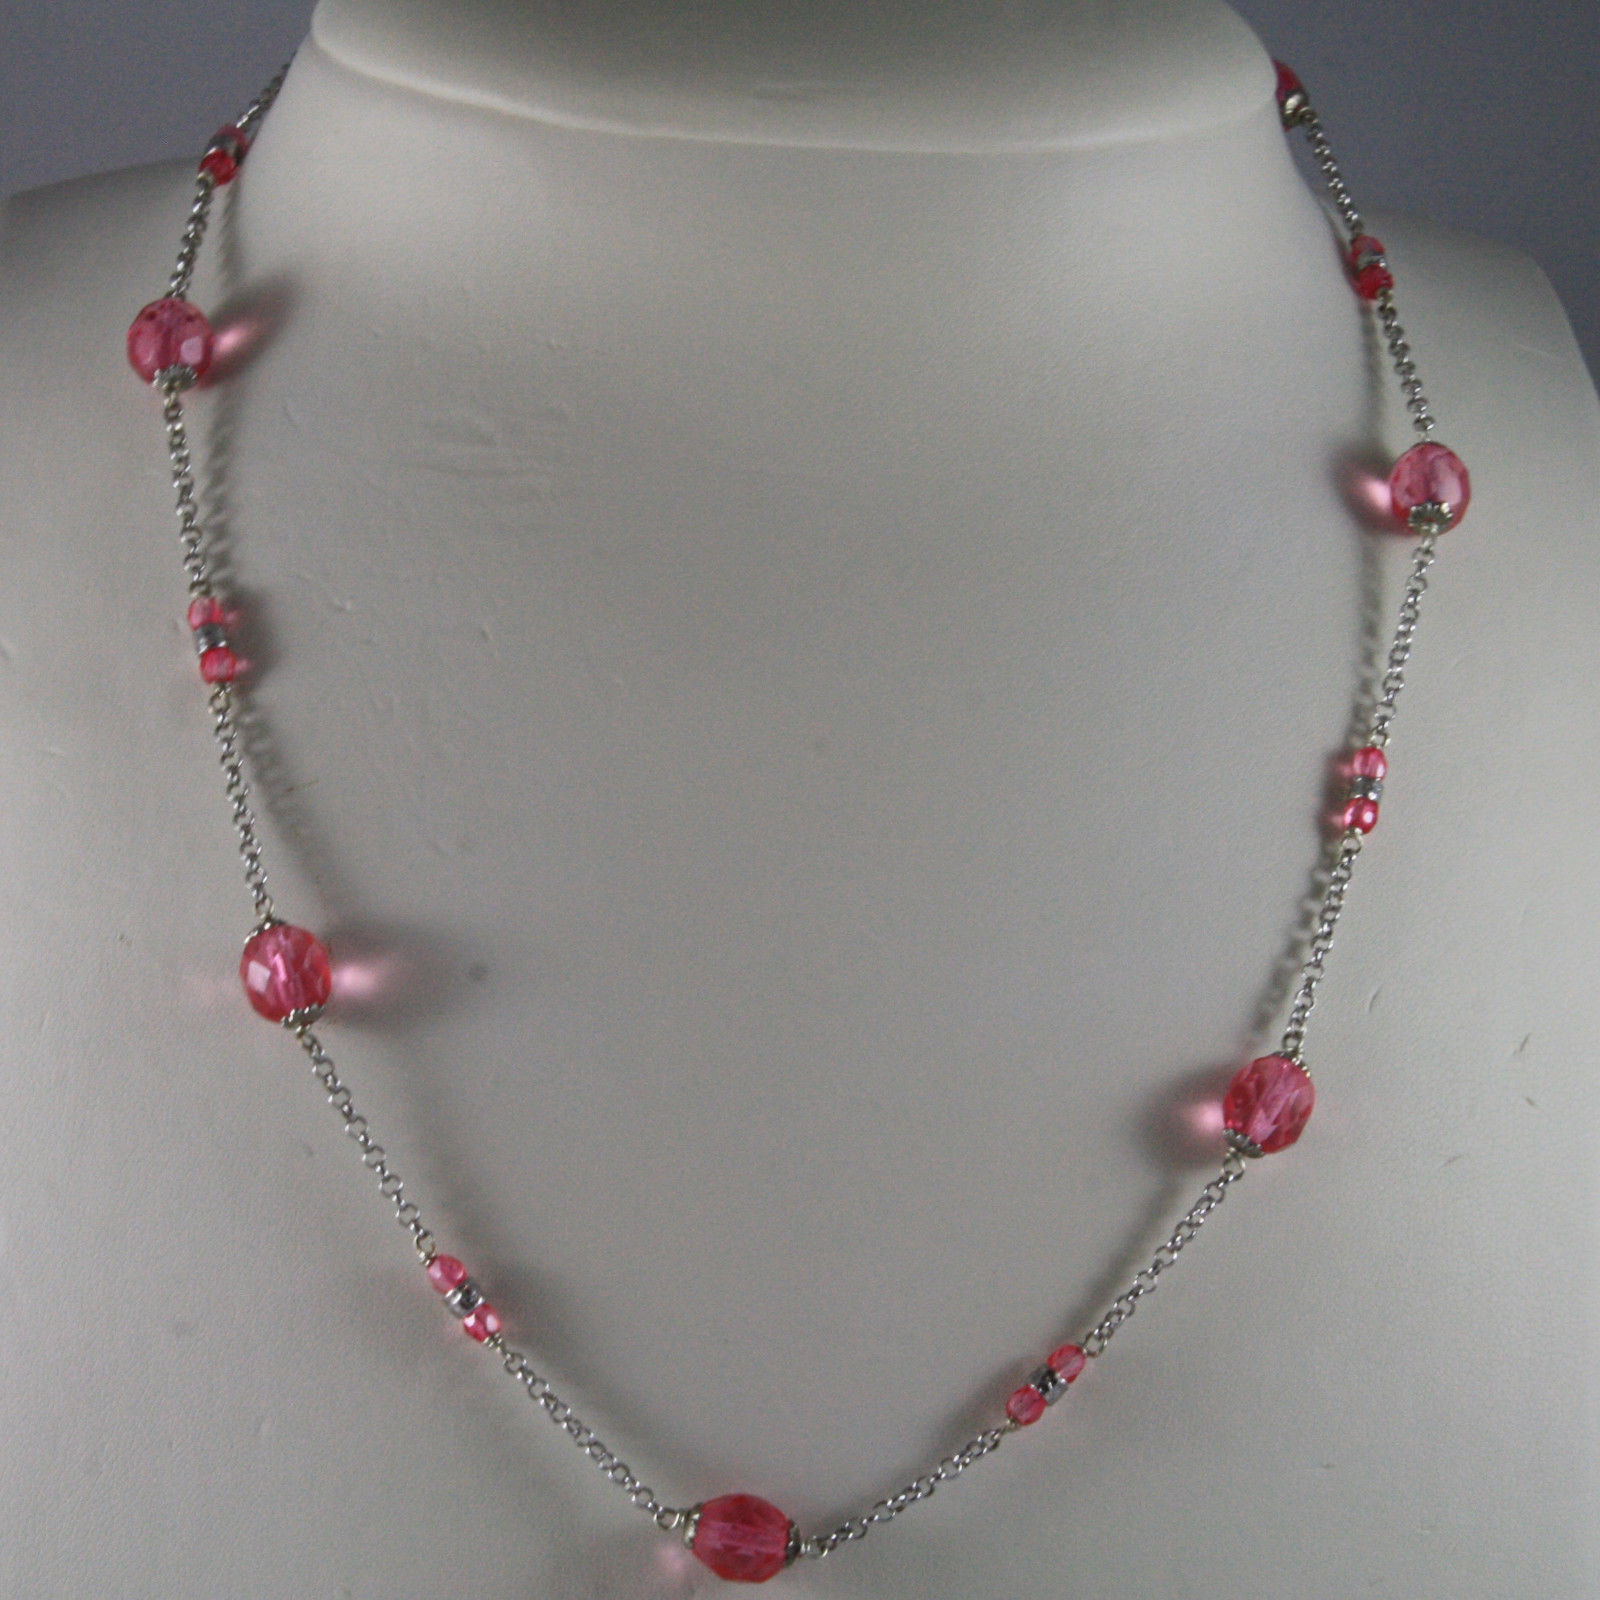 .925 SILVER RHODIUM NECKLACE WITH FACETED PINK CRYSTALS